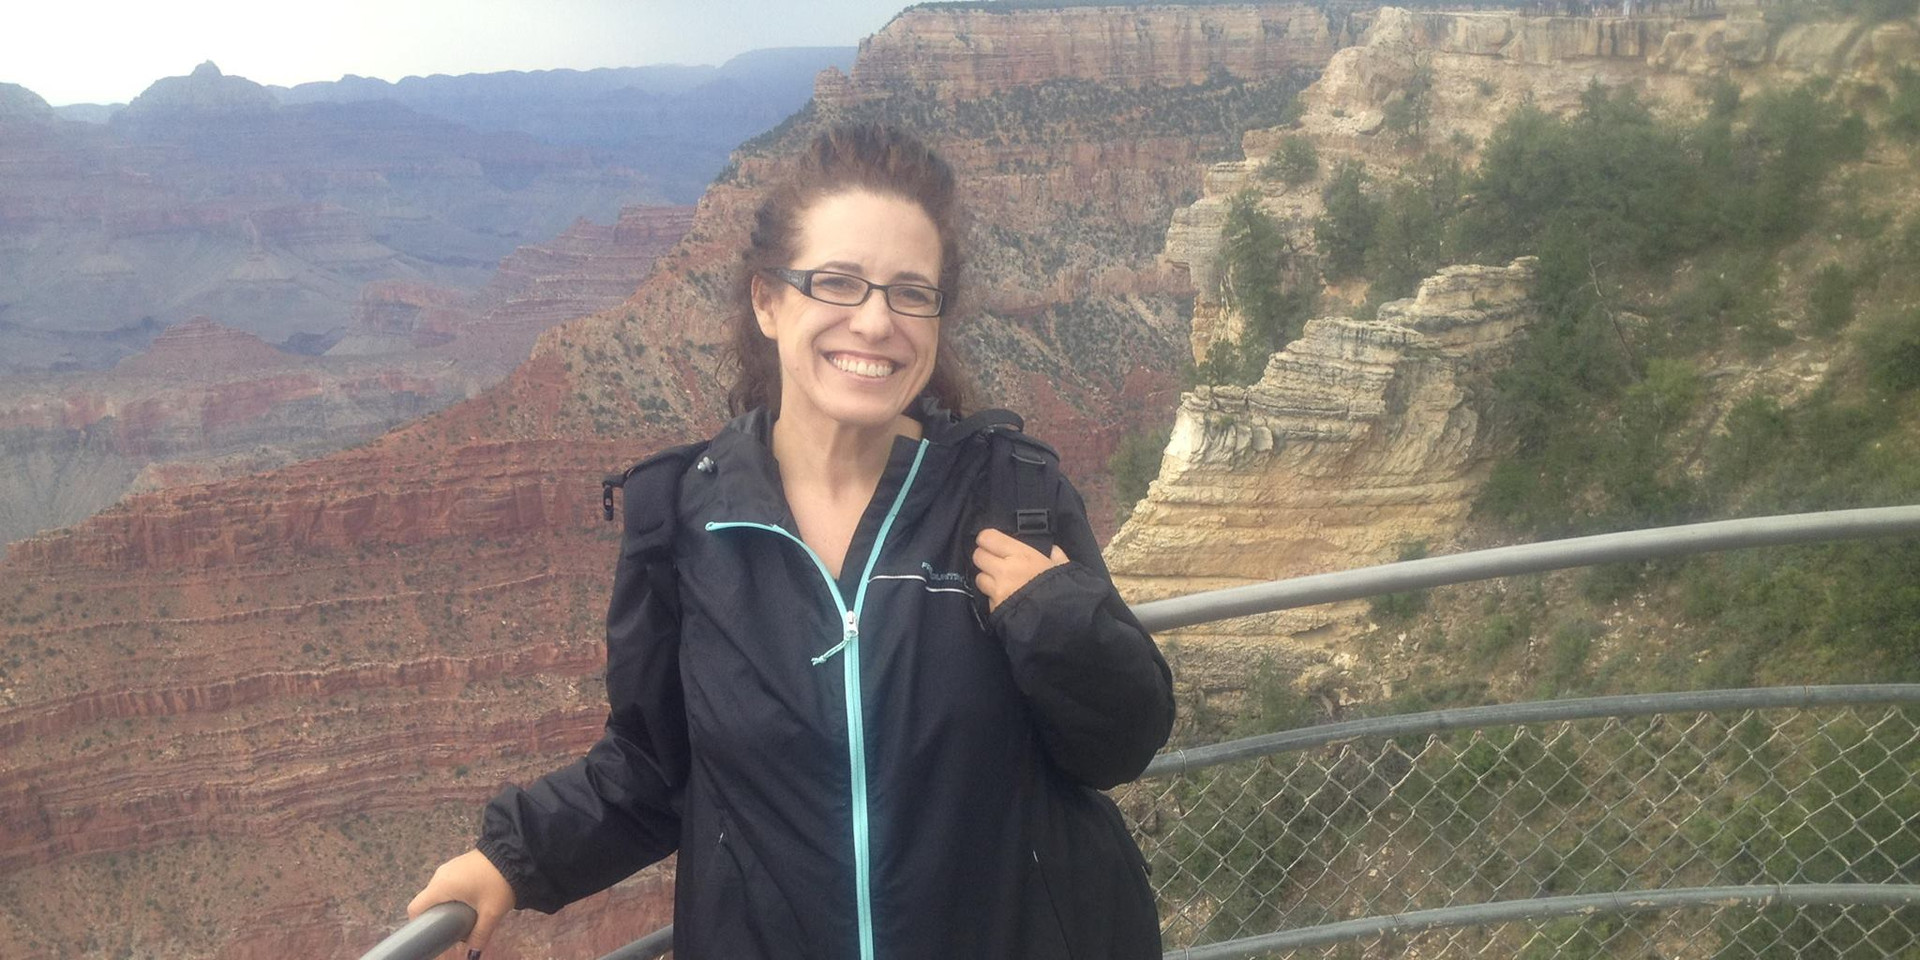 Visit to the Grand Canyon